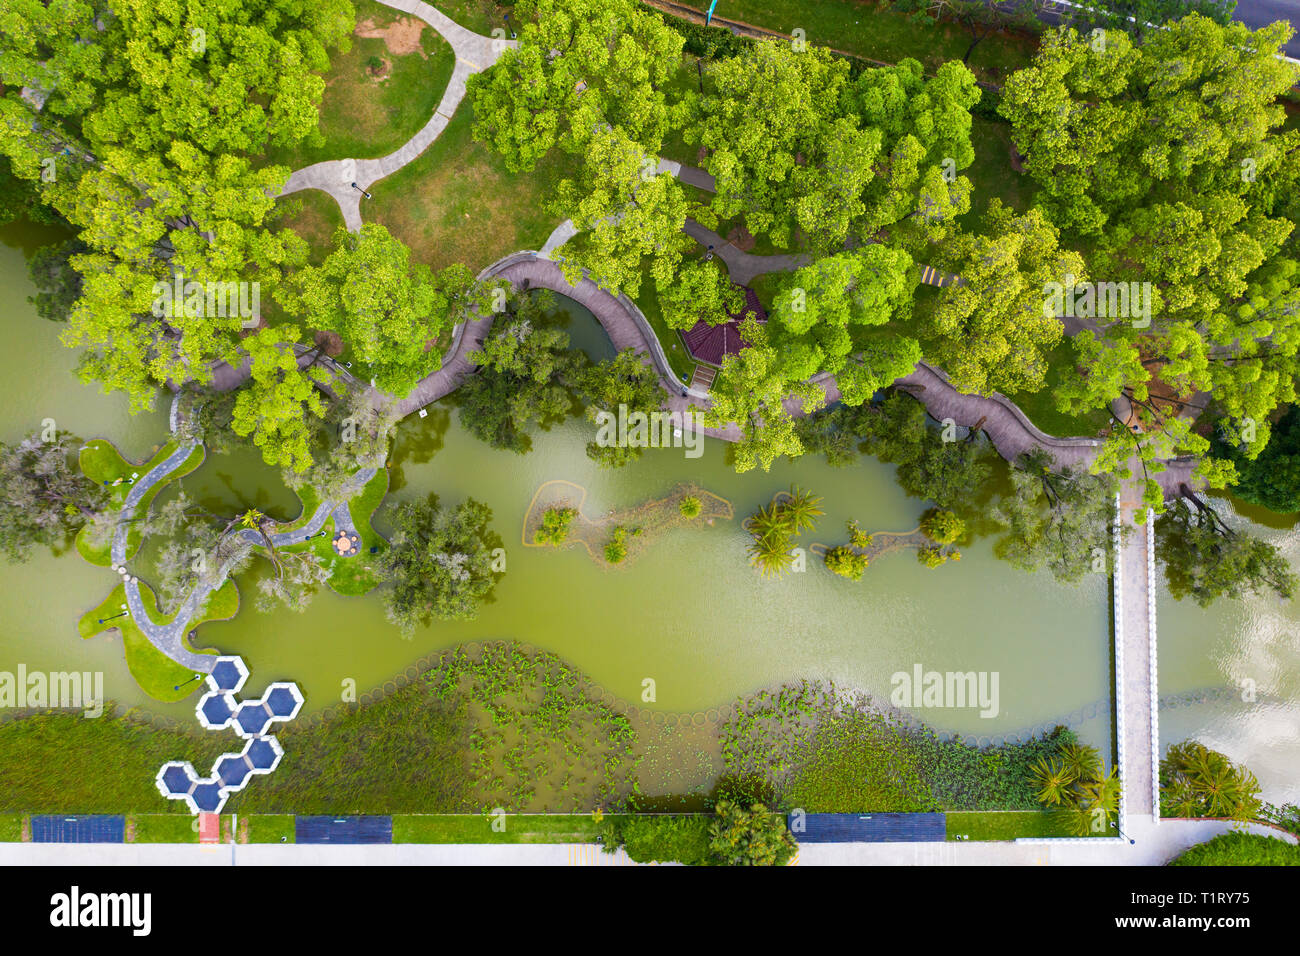 Aalternative perspective aerial view of Toa Payoh Town Park in Singapore. - Stock Image